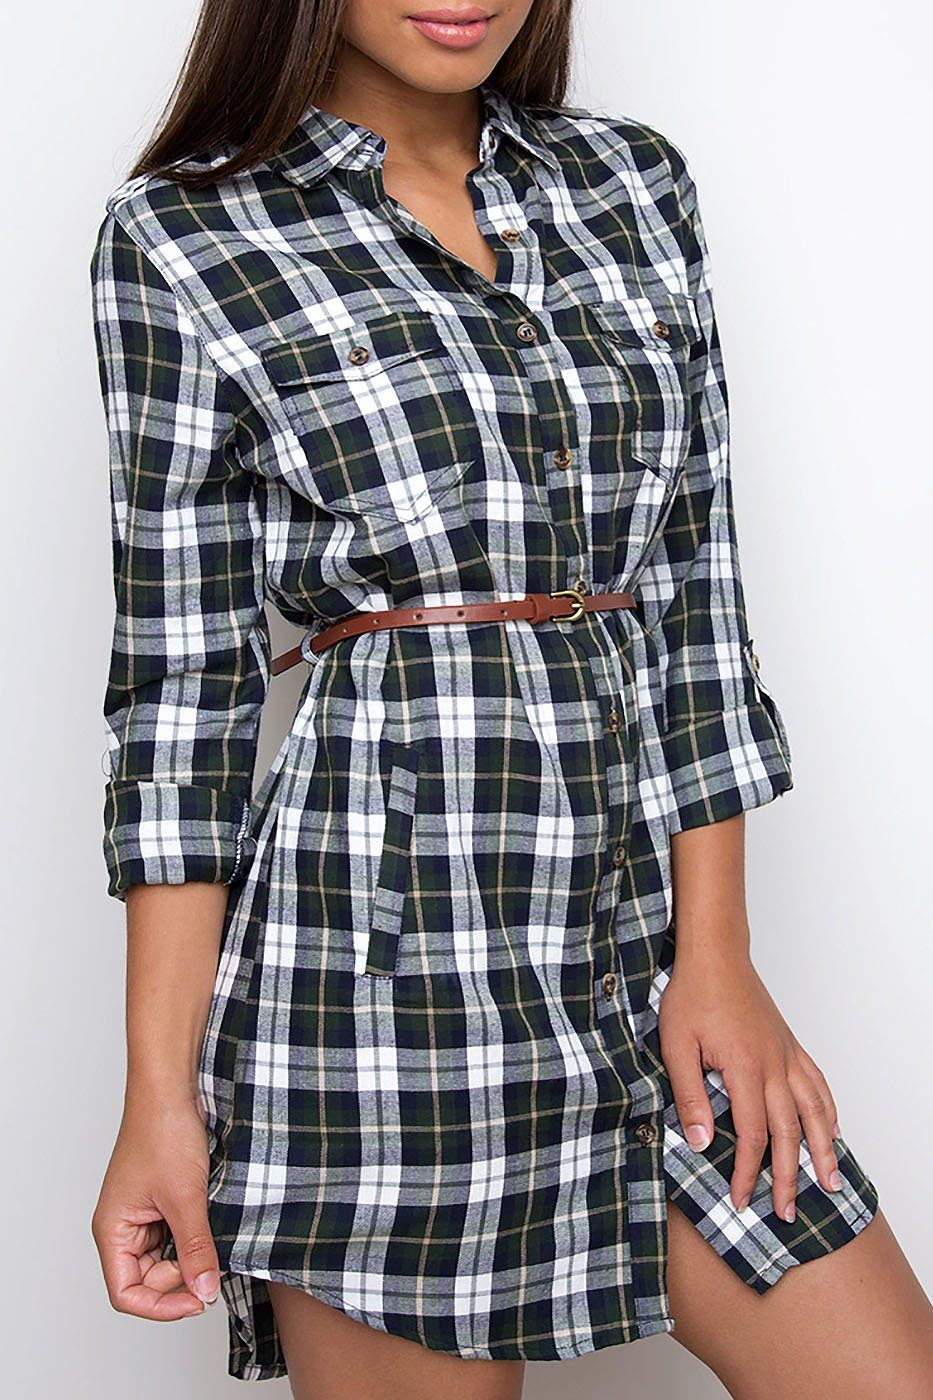 Jennie Plaid Dress - Olive | Shop Priceless